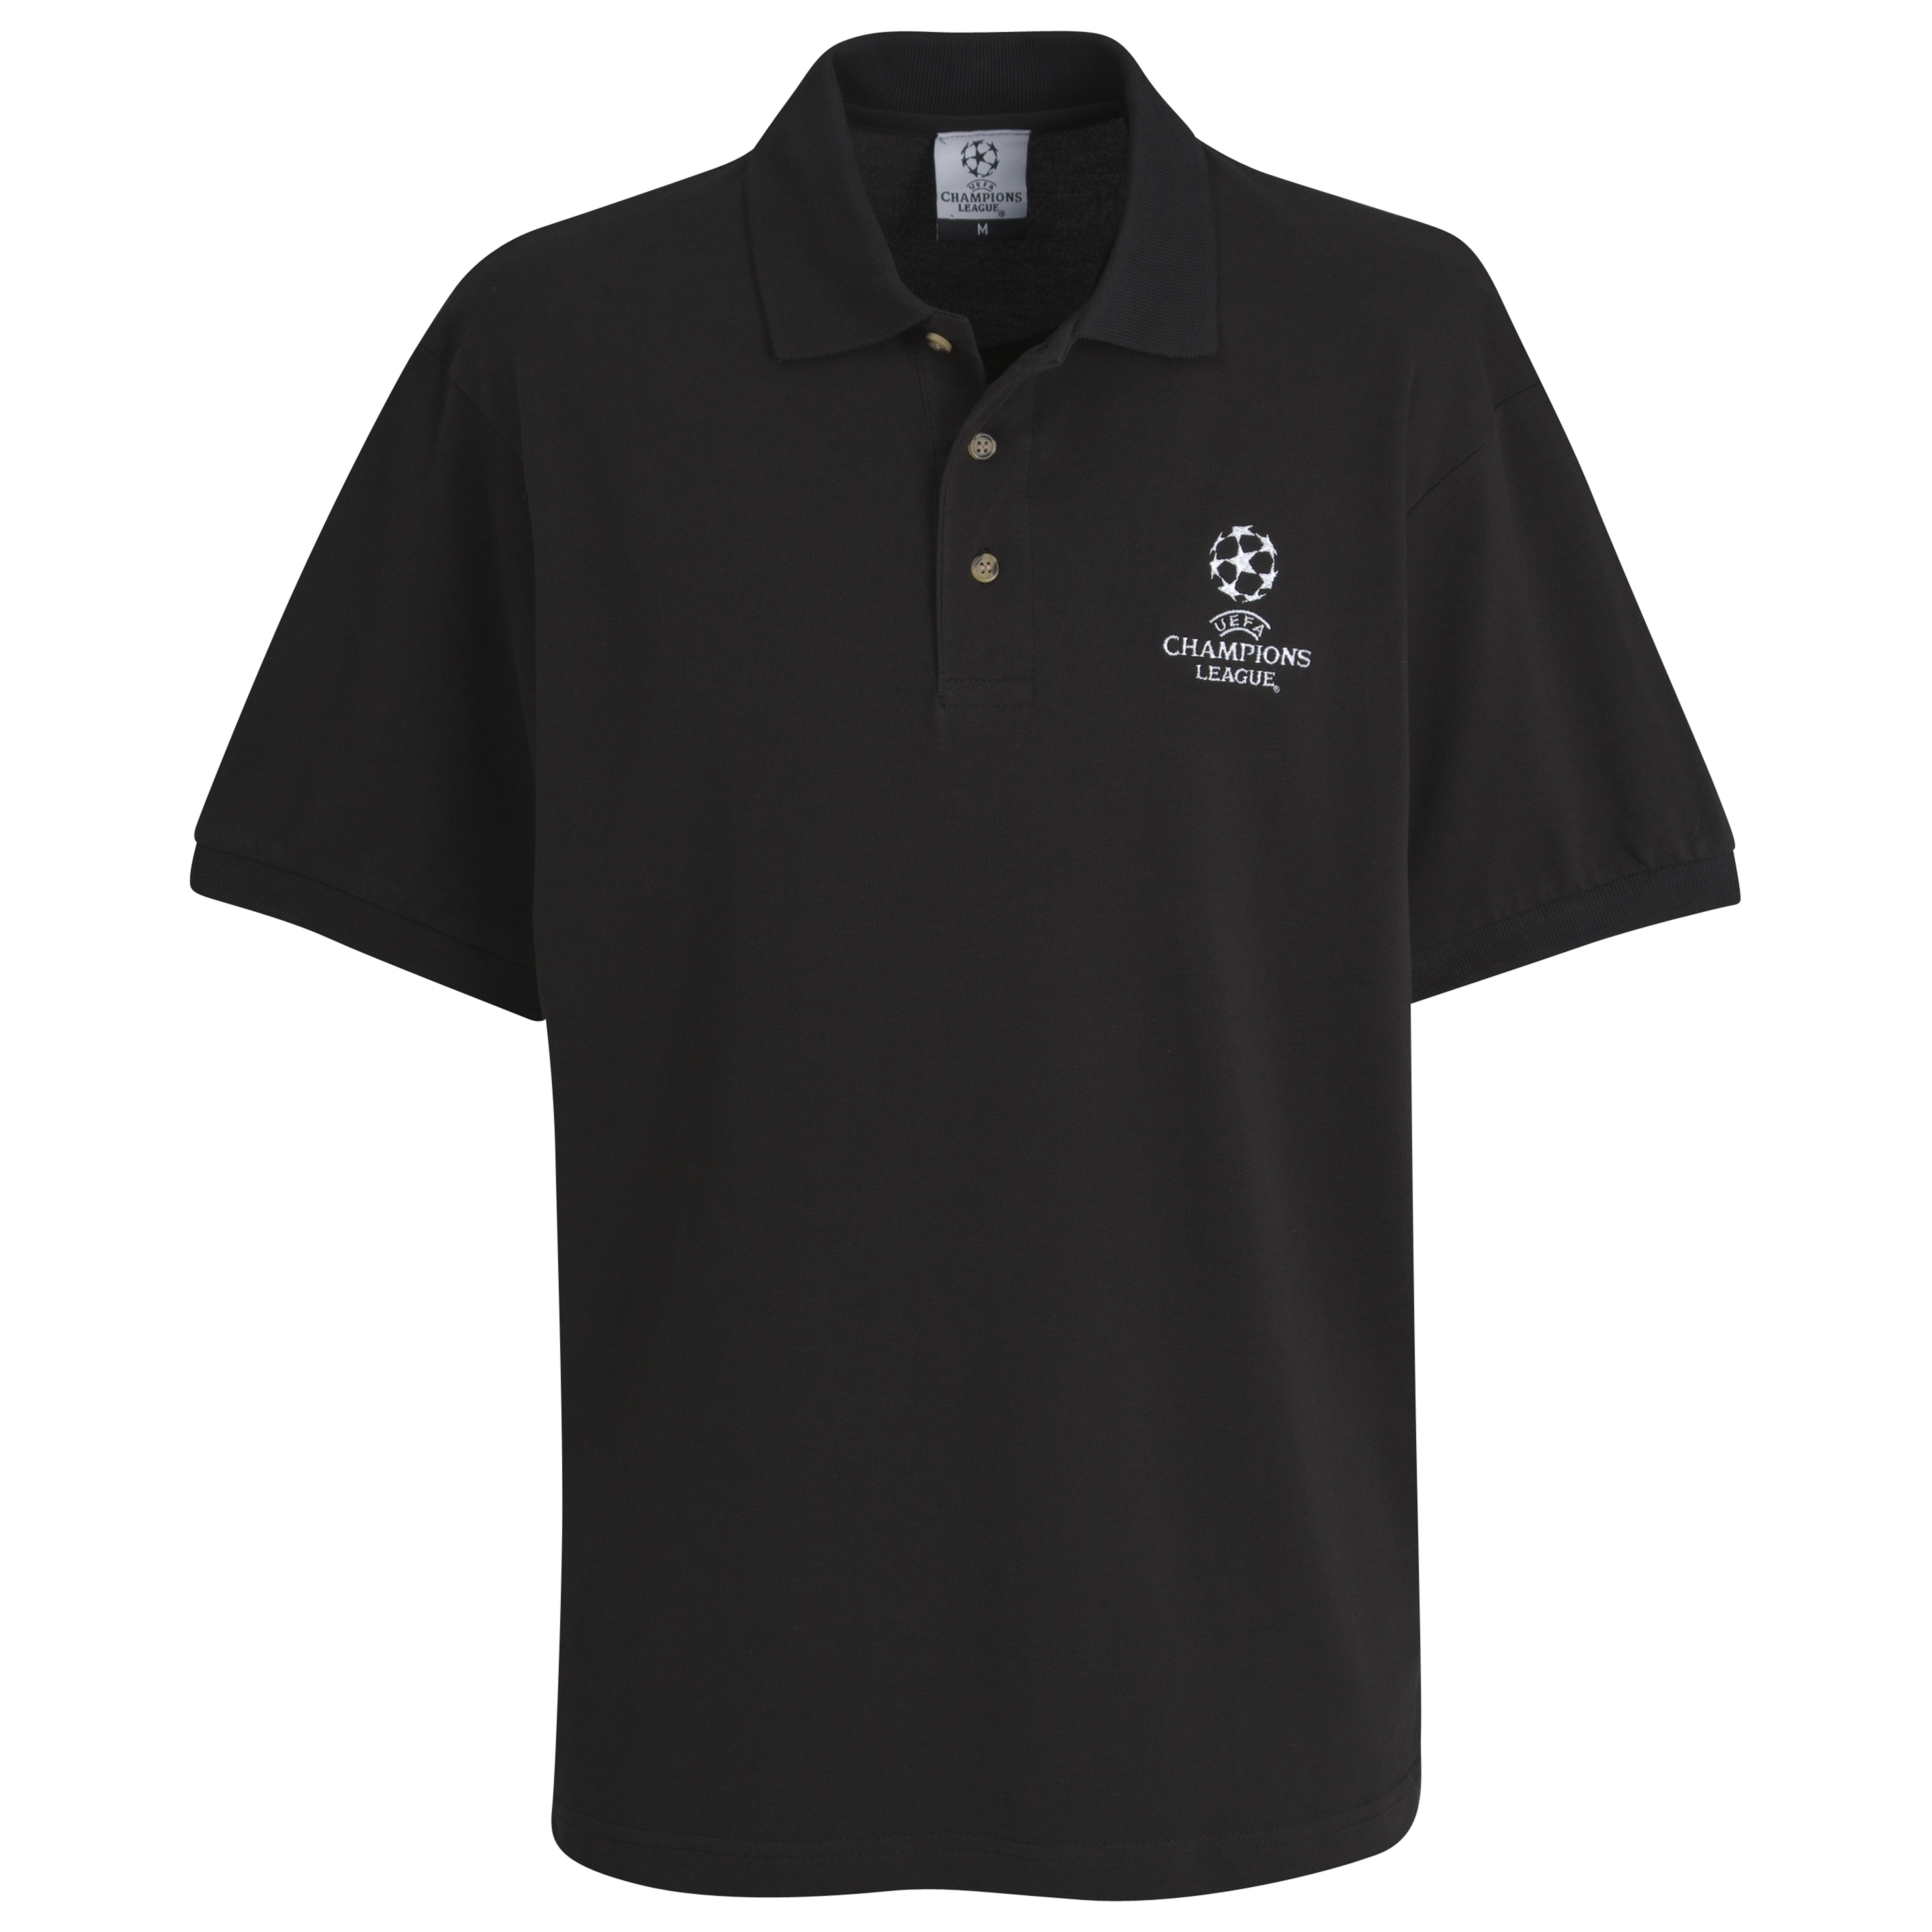 UEFA Champions League Pique Polo - Black - Kids